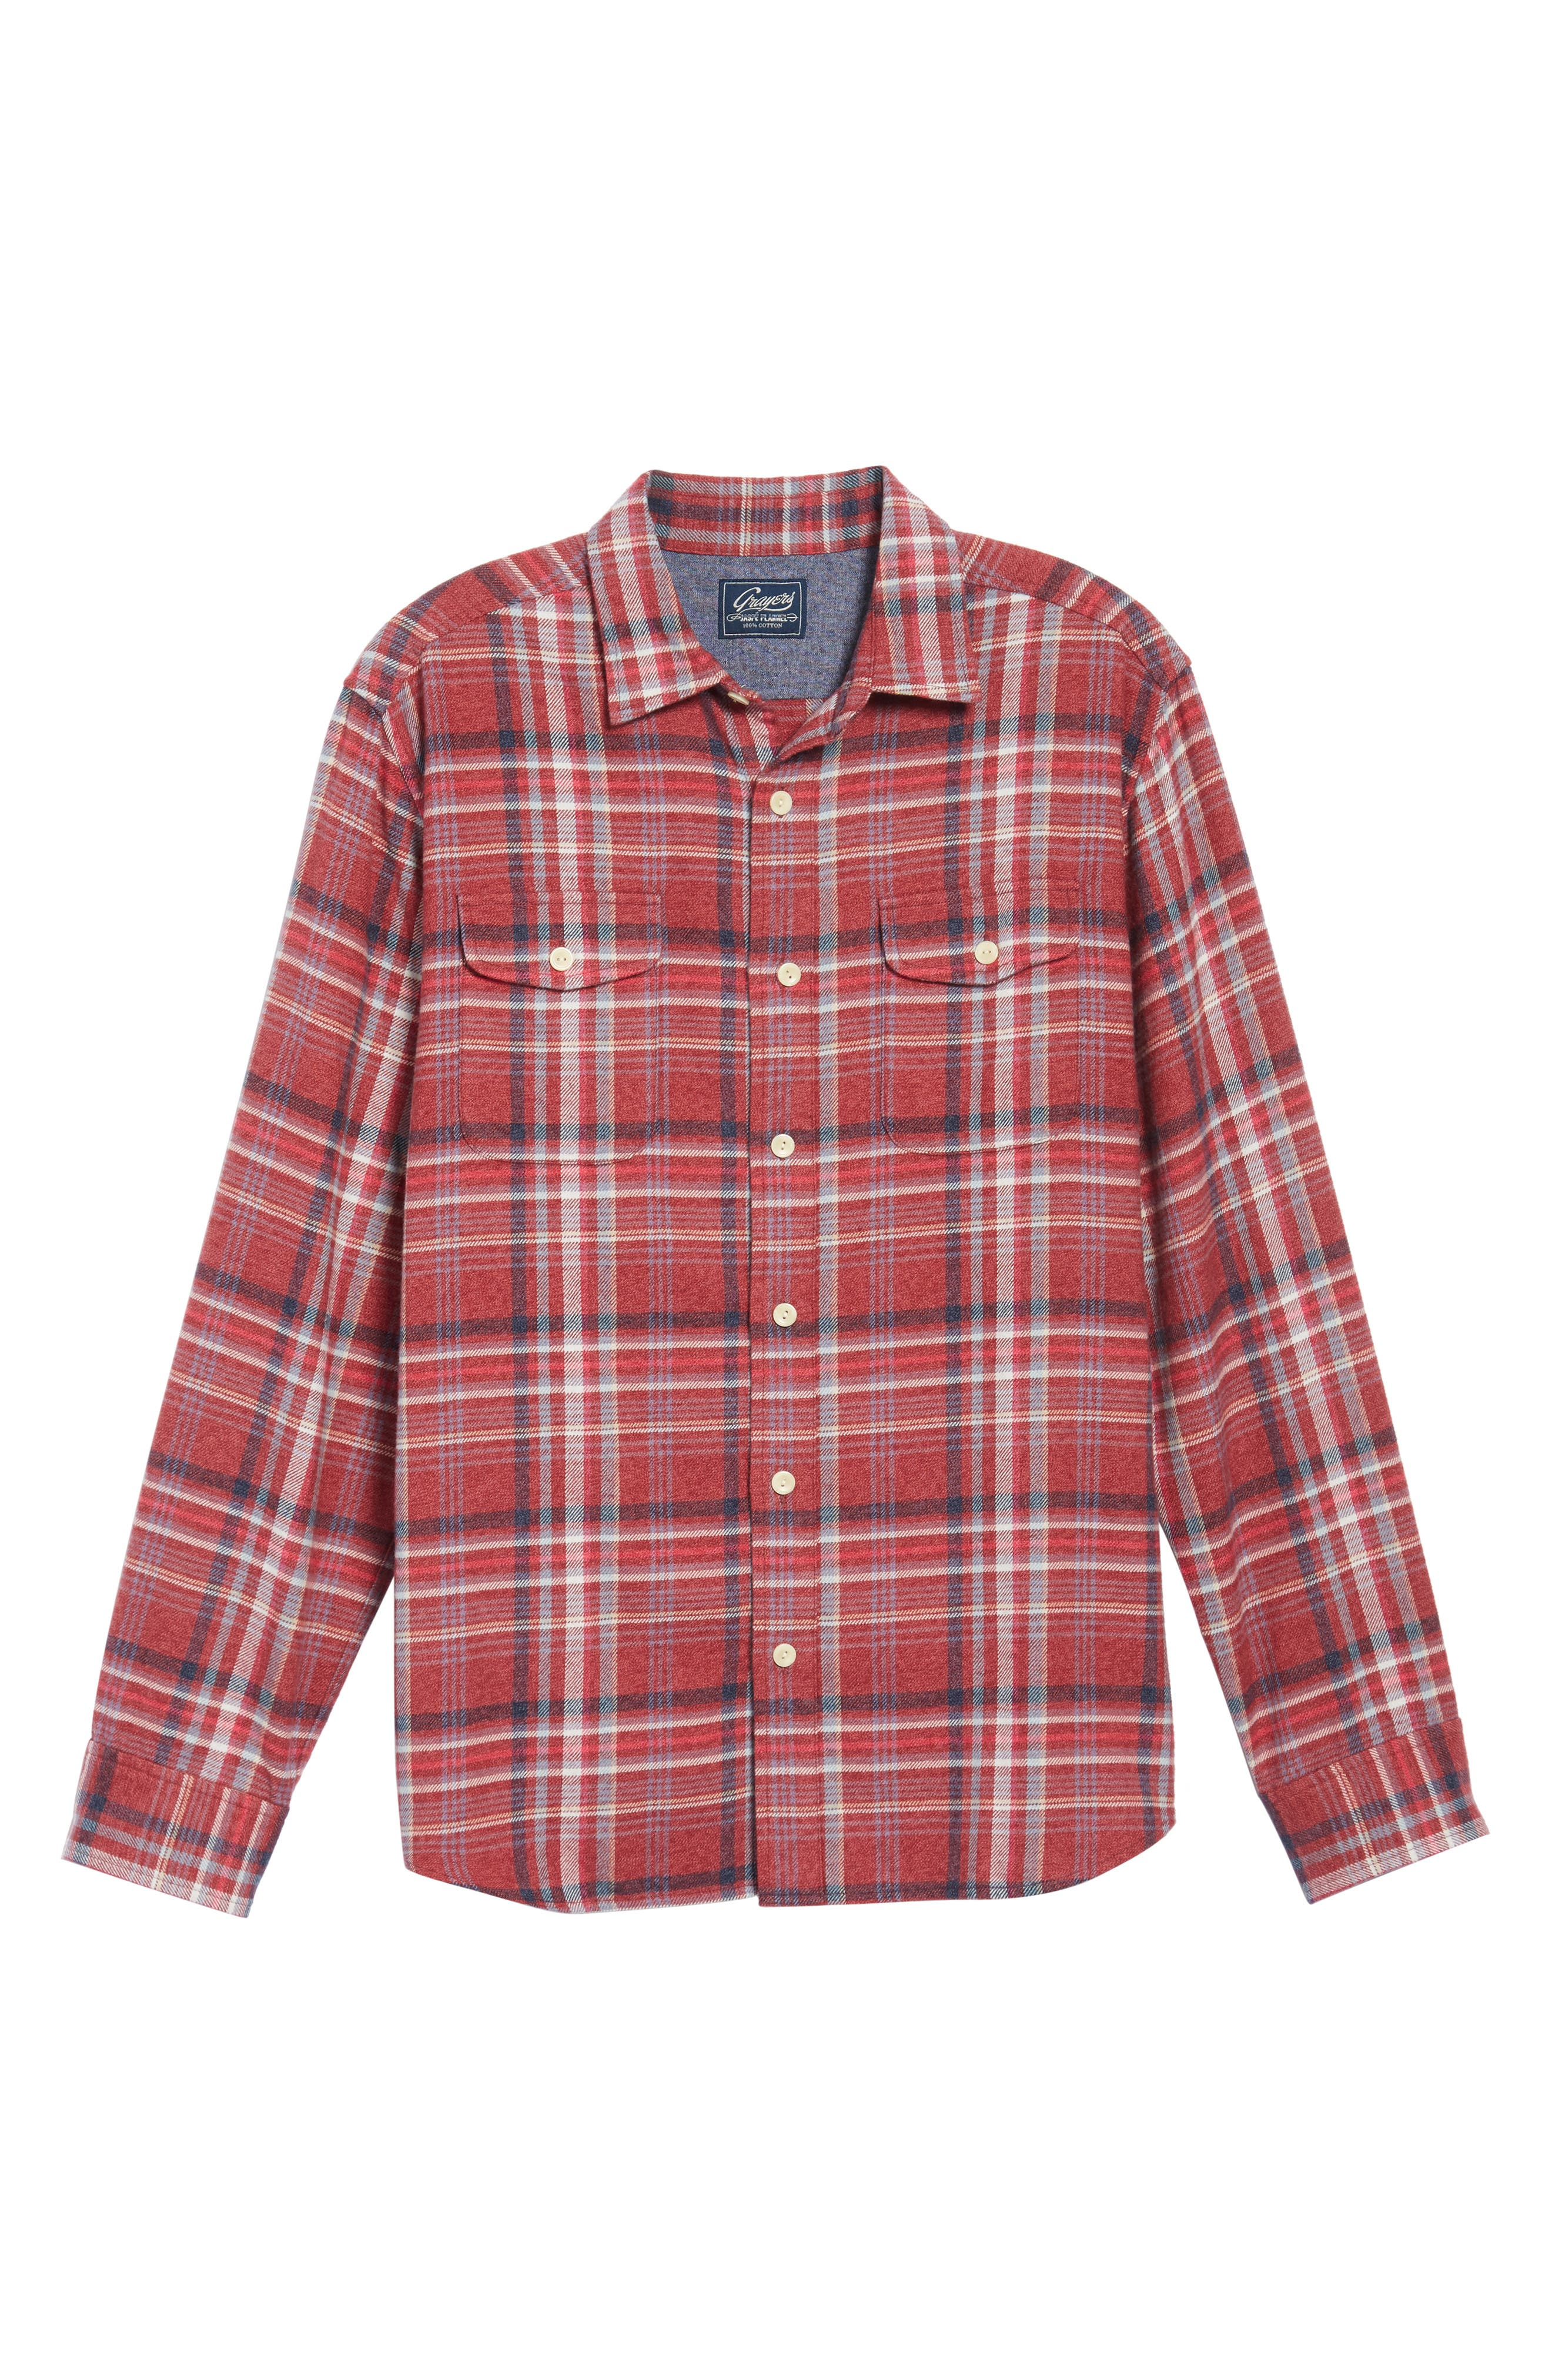 Milbrook Modern Fit Lux Flannel Sport Shirt,                             Alternate thumbnail 6, color,                             Burgundy Plaid